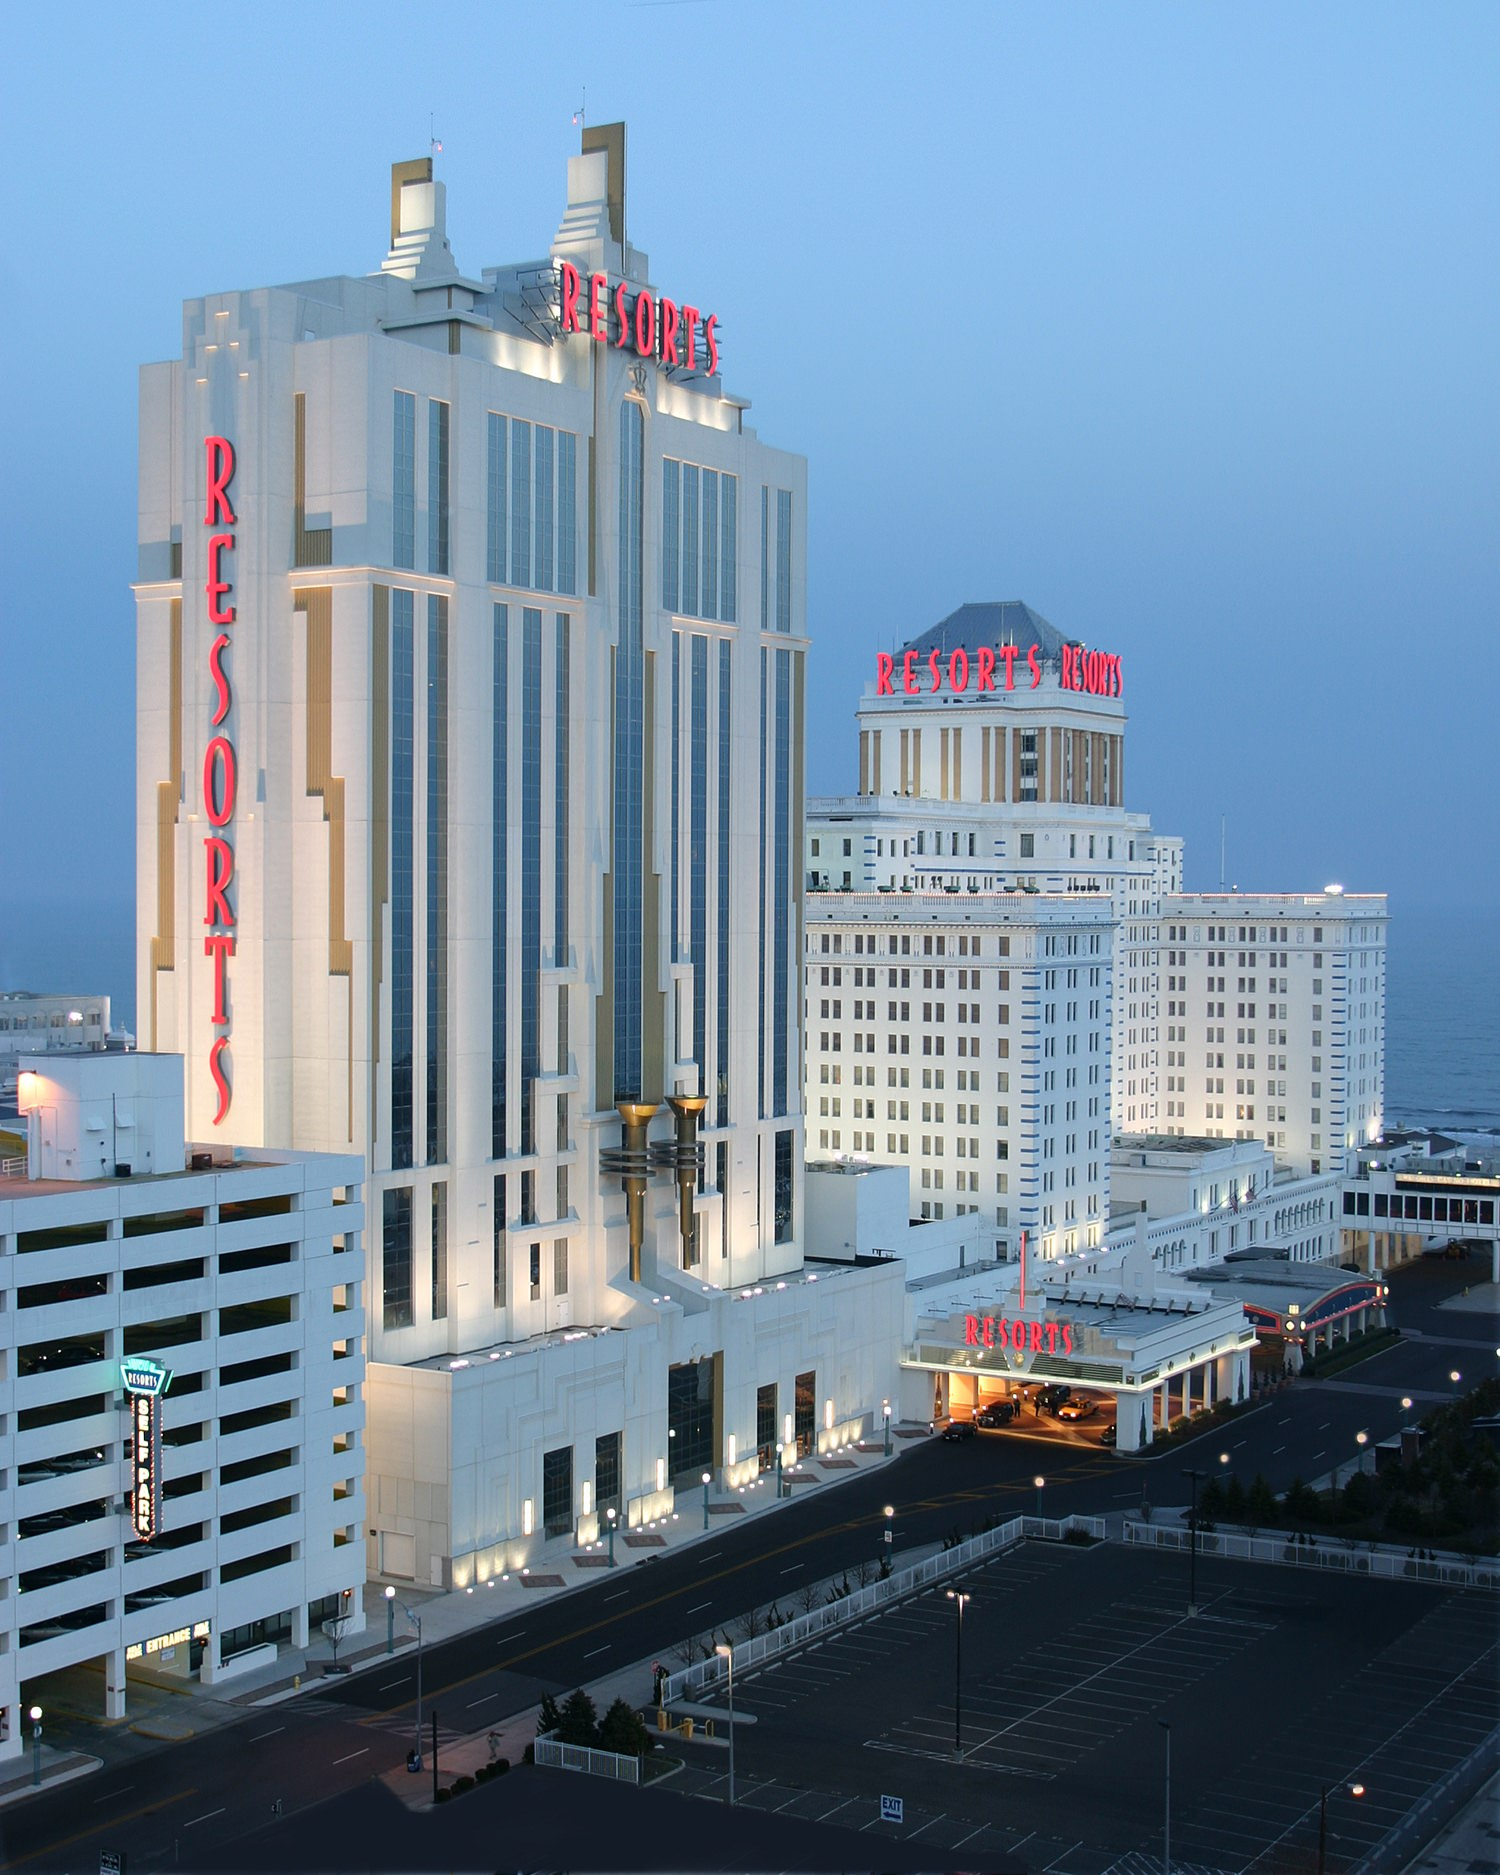 DraftKings cuts deal with Atlantic City casino for sports betting